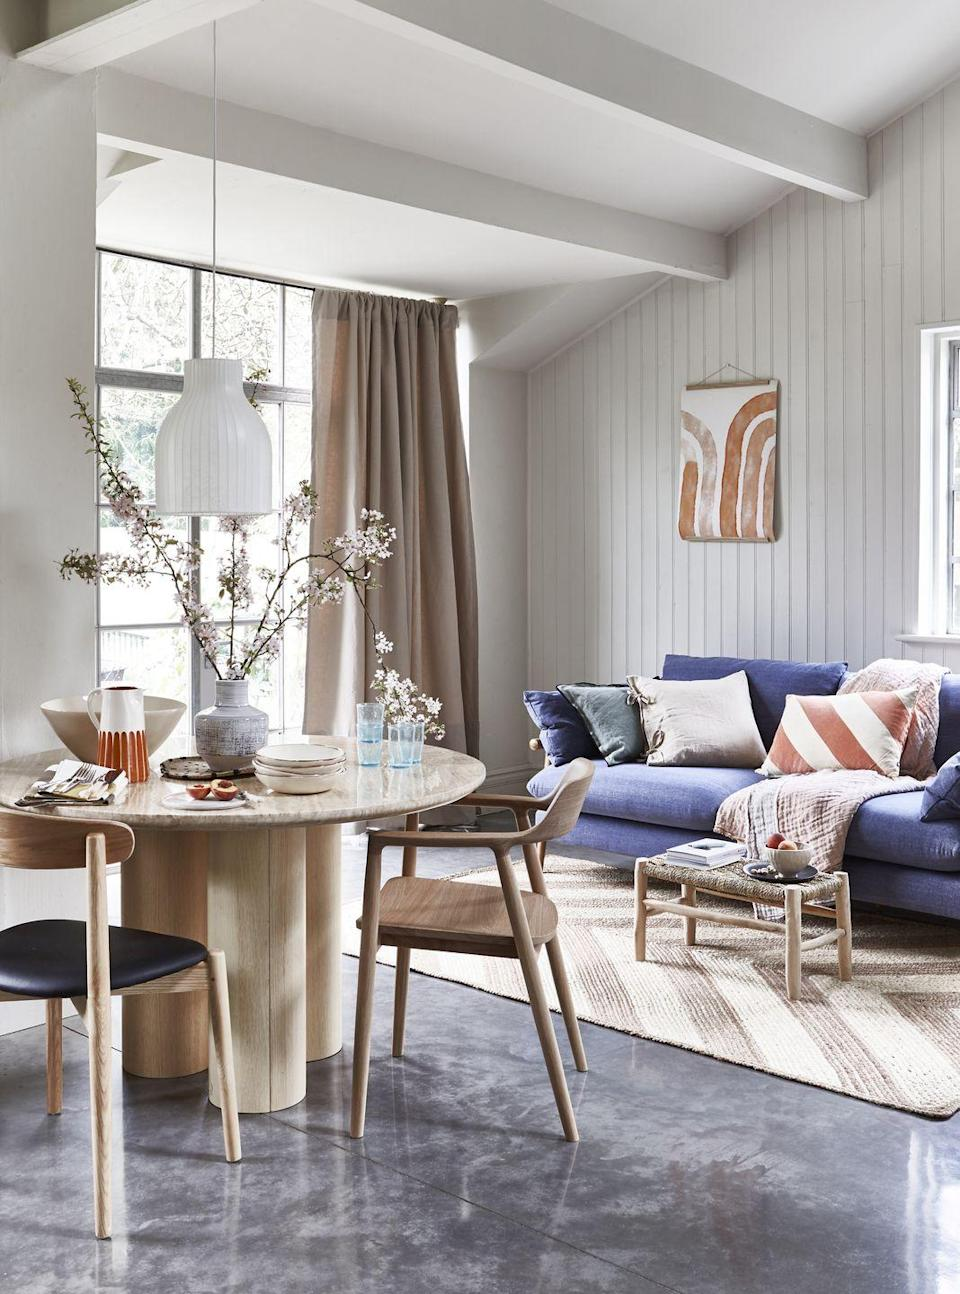 """<p>Japandi is an effortlessly elegant trend that will work in any room of the house – especially in a large open-plan living space.</p><p>'With wood at the heart of the Japandi trend, it's time to make a feature of the dining table. Pair a solid statement piece with upholstered chairs, in a soft, muted tone and finish off with a Scandi-inspired patterned rug. If space is at a premium, opt for quality over quantity and invest in a wooden console table or storage unit,' says Antonia Wheeler, Design Director at <a href=""""https://www.arighibianchi.co.uk/"""" rel=""""nofollow noopener"""" target=""""_blank"""" data-ylk=""""slk:Arighi Bianchi"""" class=""""link rapid-noclick-resp"""">Arighi Bianchi</a>.</p>"""